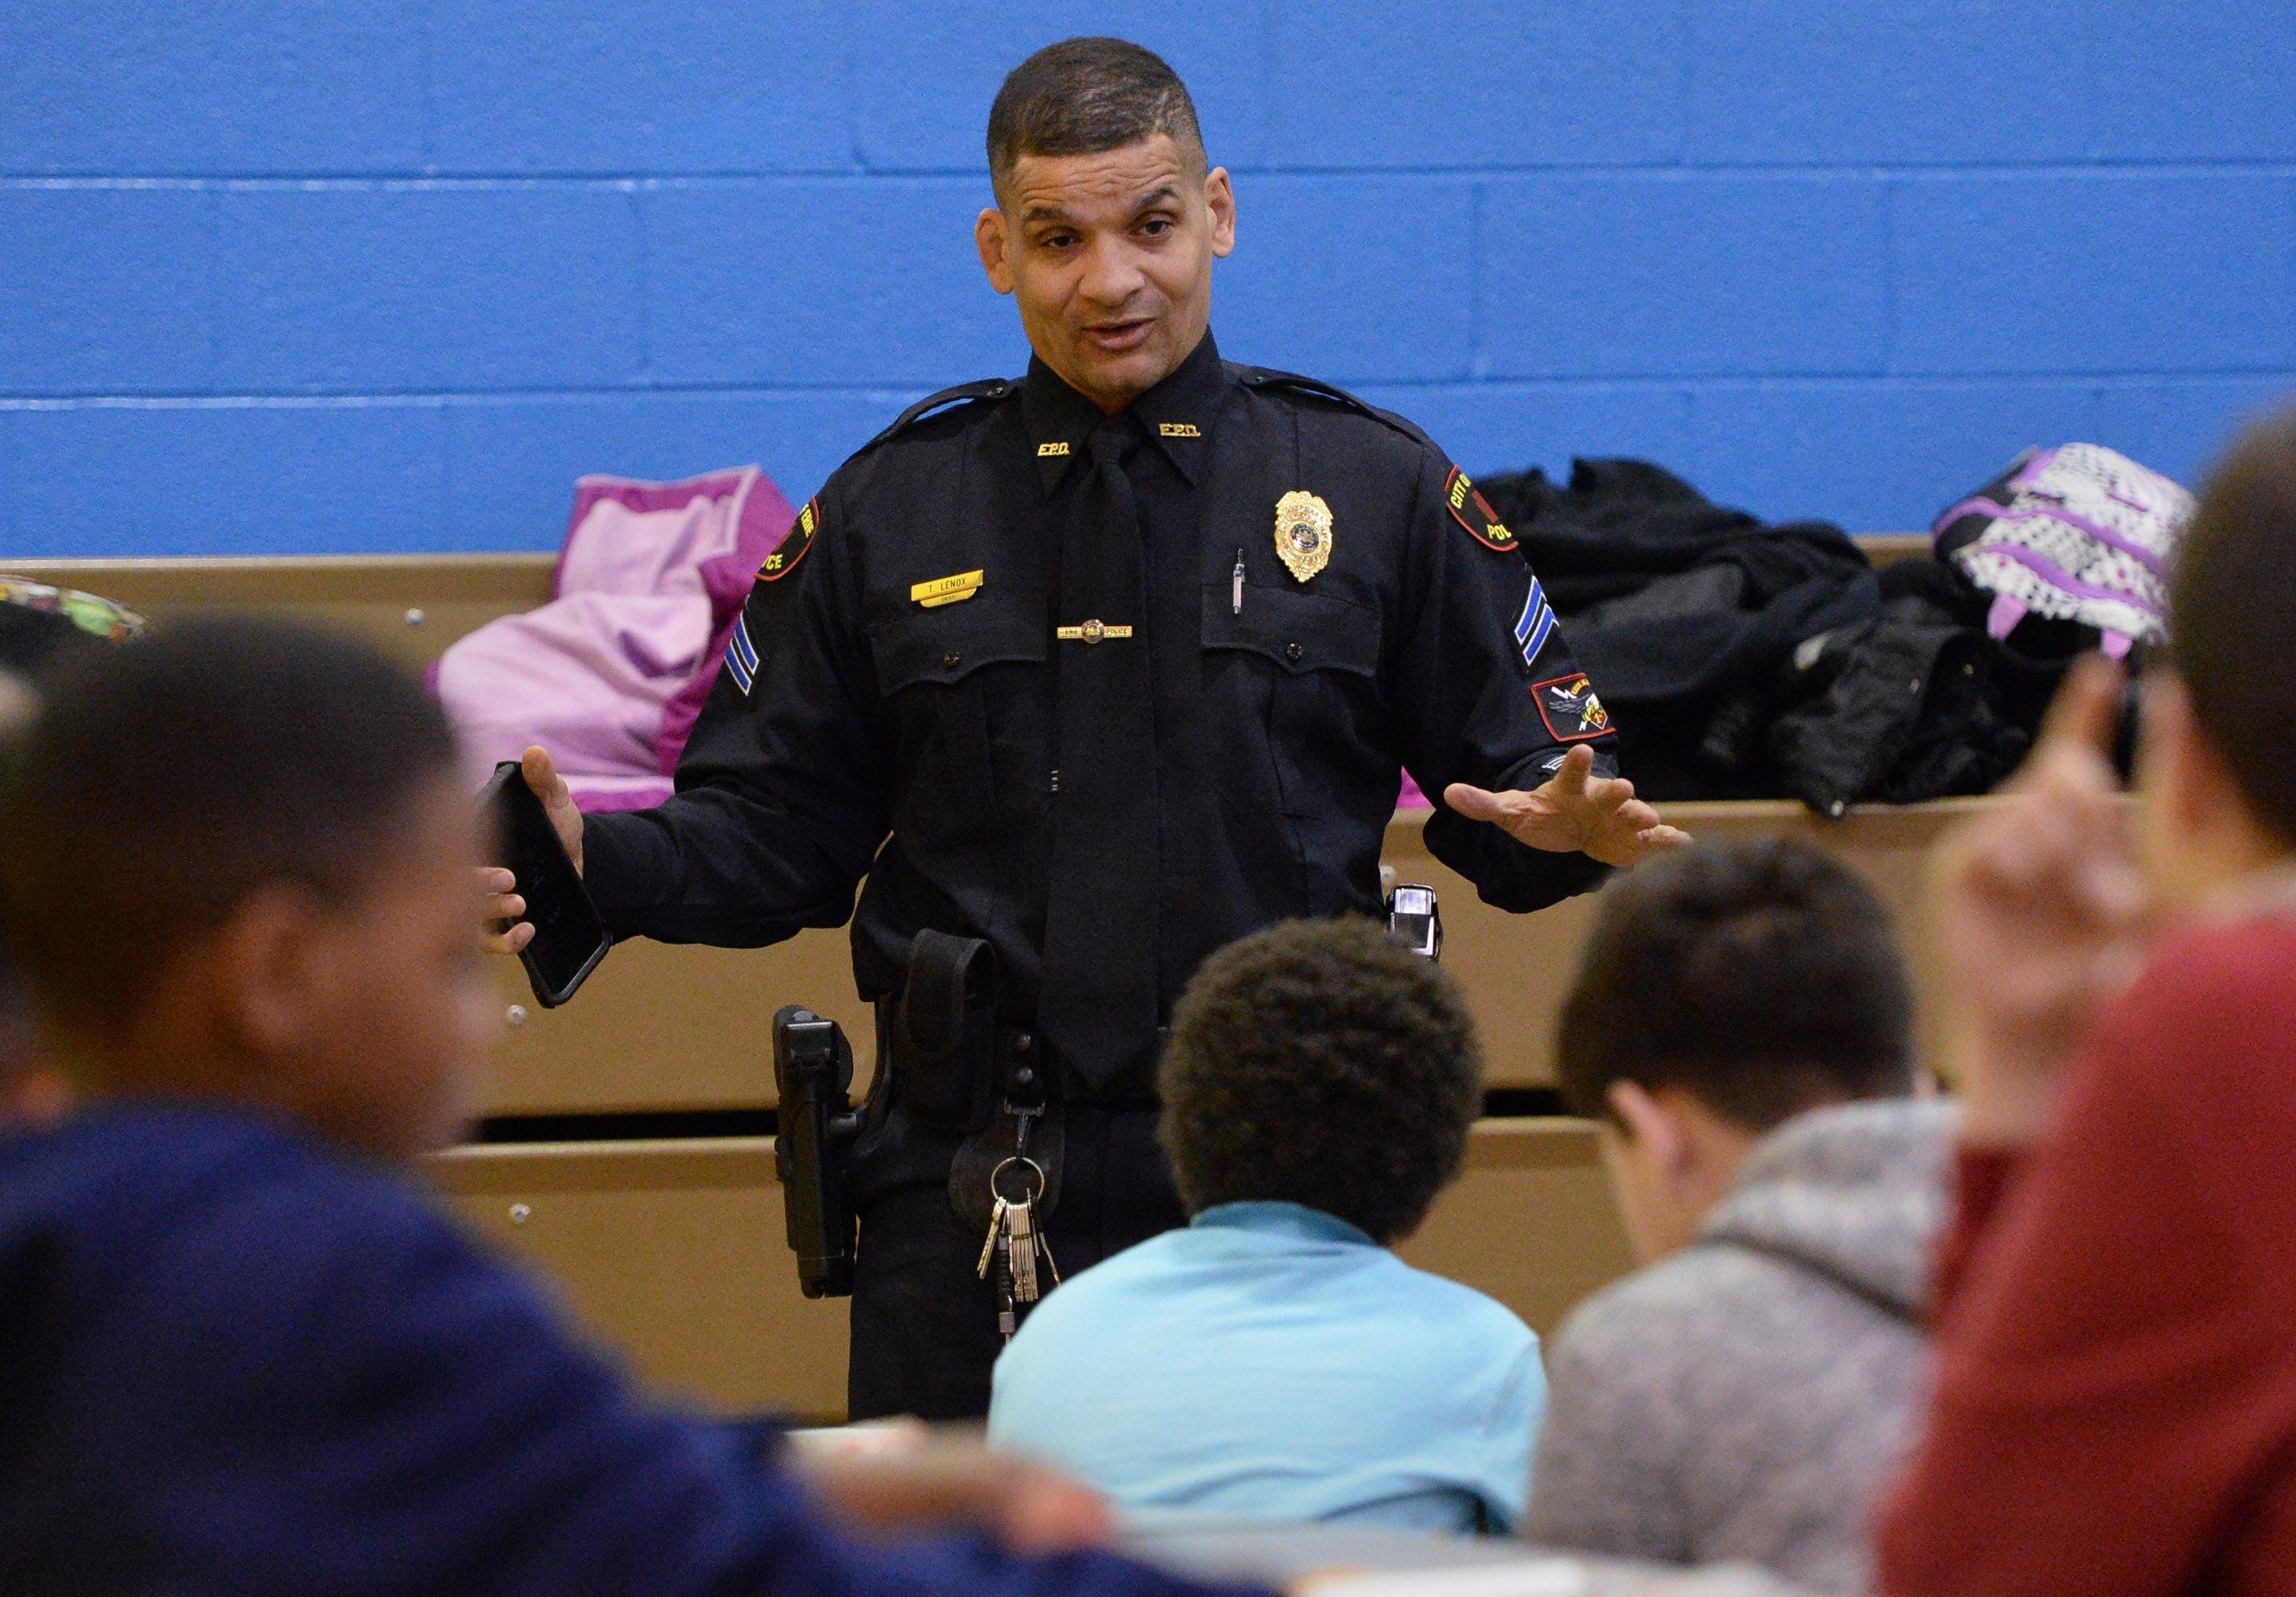 Erie Bureau of Police Cpl. Tom Lenox talks with students during a Police Athletic League after-school program at Pfeiffer-Burleigh Elementary School in Erie in this March 21, 2018 file photo. Lenox, who has since been promoted to sergeant, is leading the Erie Bureau of Police's efforts to bring more diversity to the 173-member department.